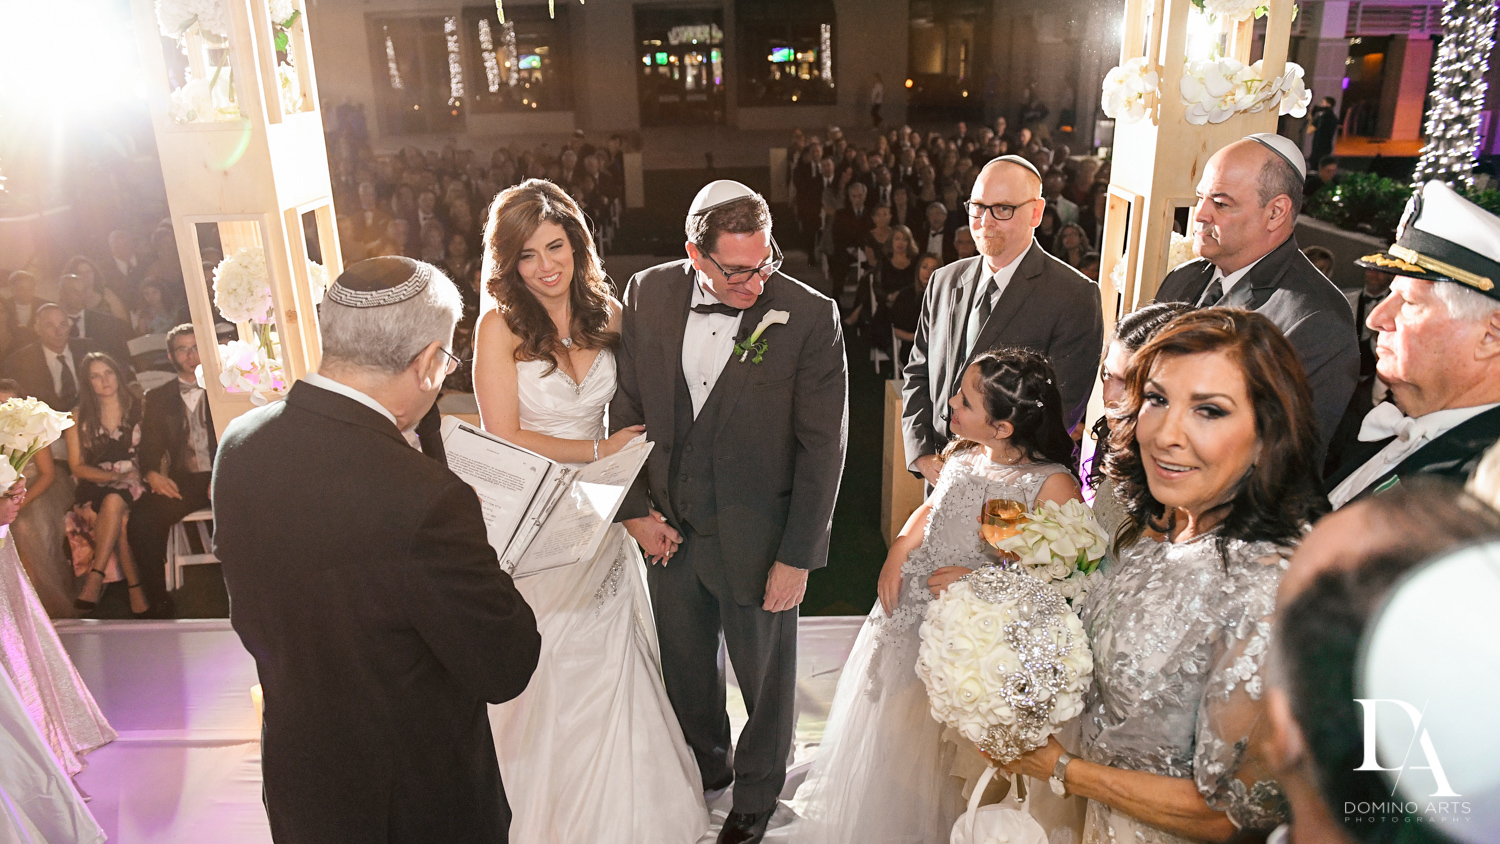 Jewish Wedding Photography in South Florida at Fort Lauderdale Marriott Harbor Beach Resort & Spa by Domino Arts Photography